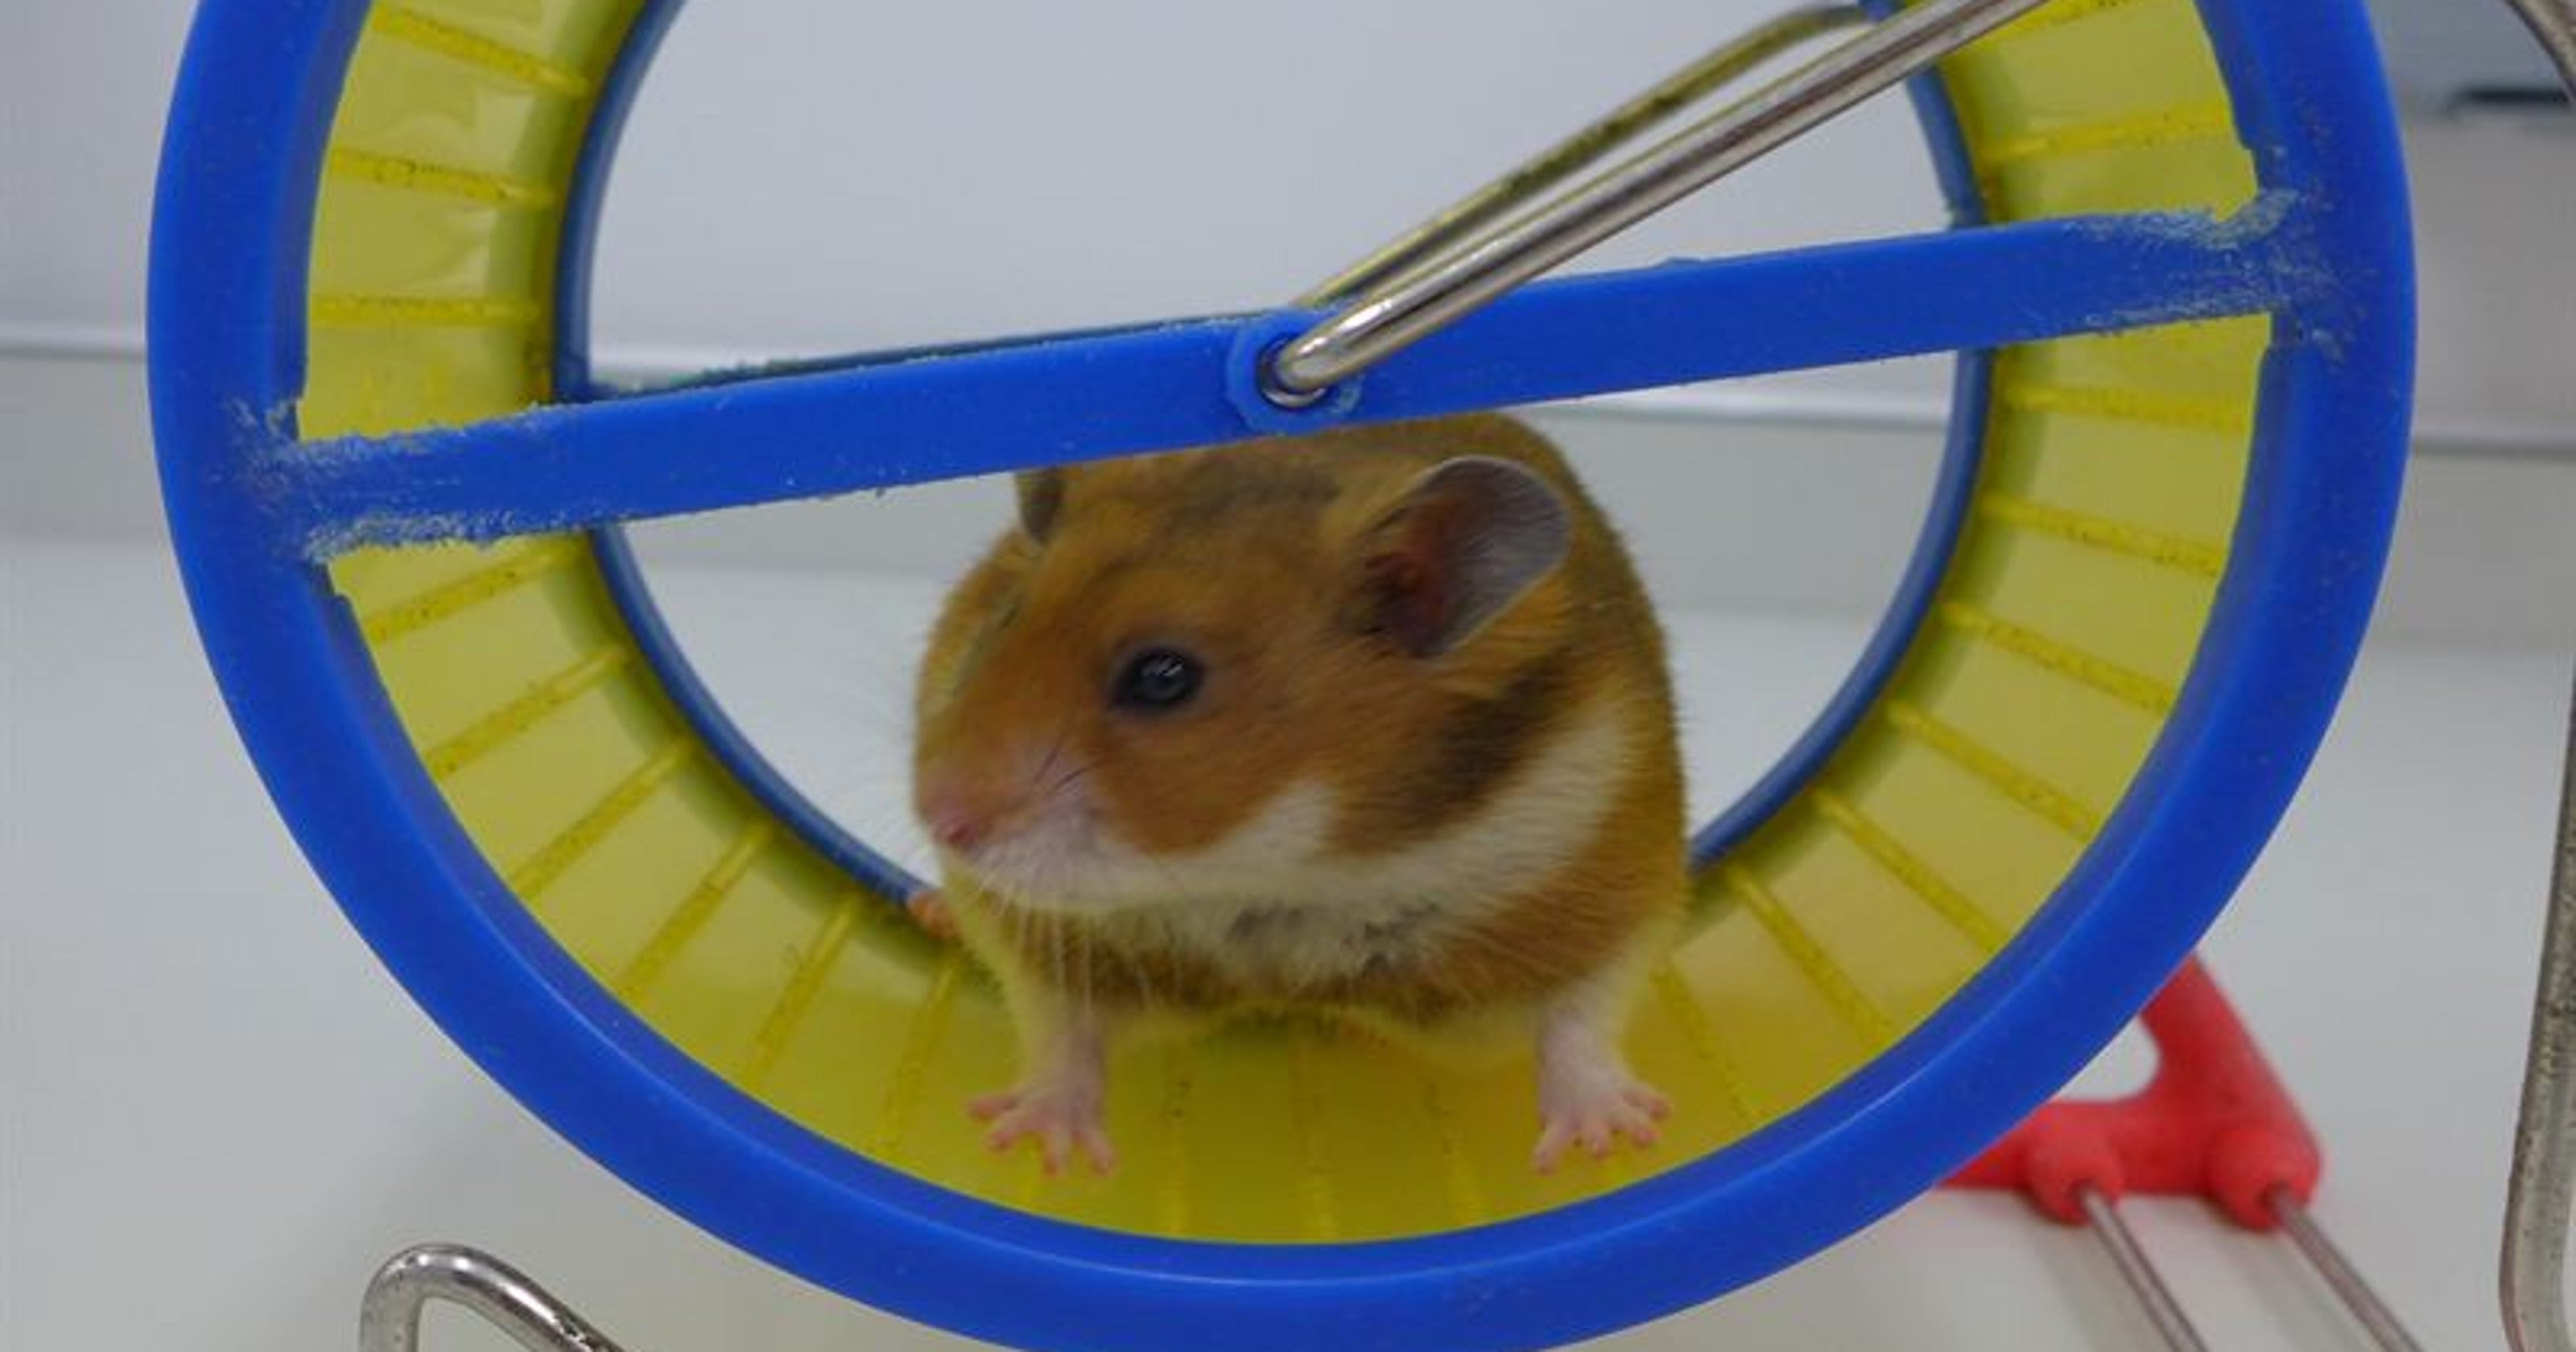 Study: Hamsters have moods, too